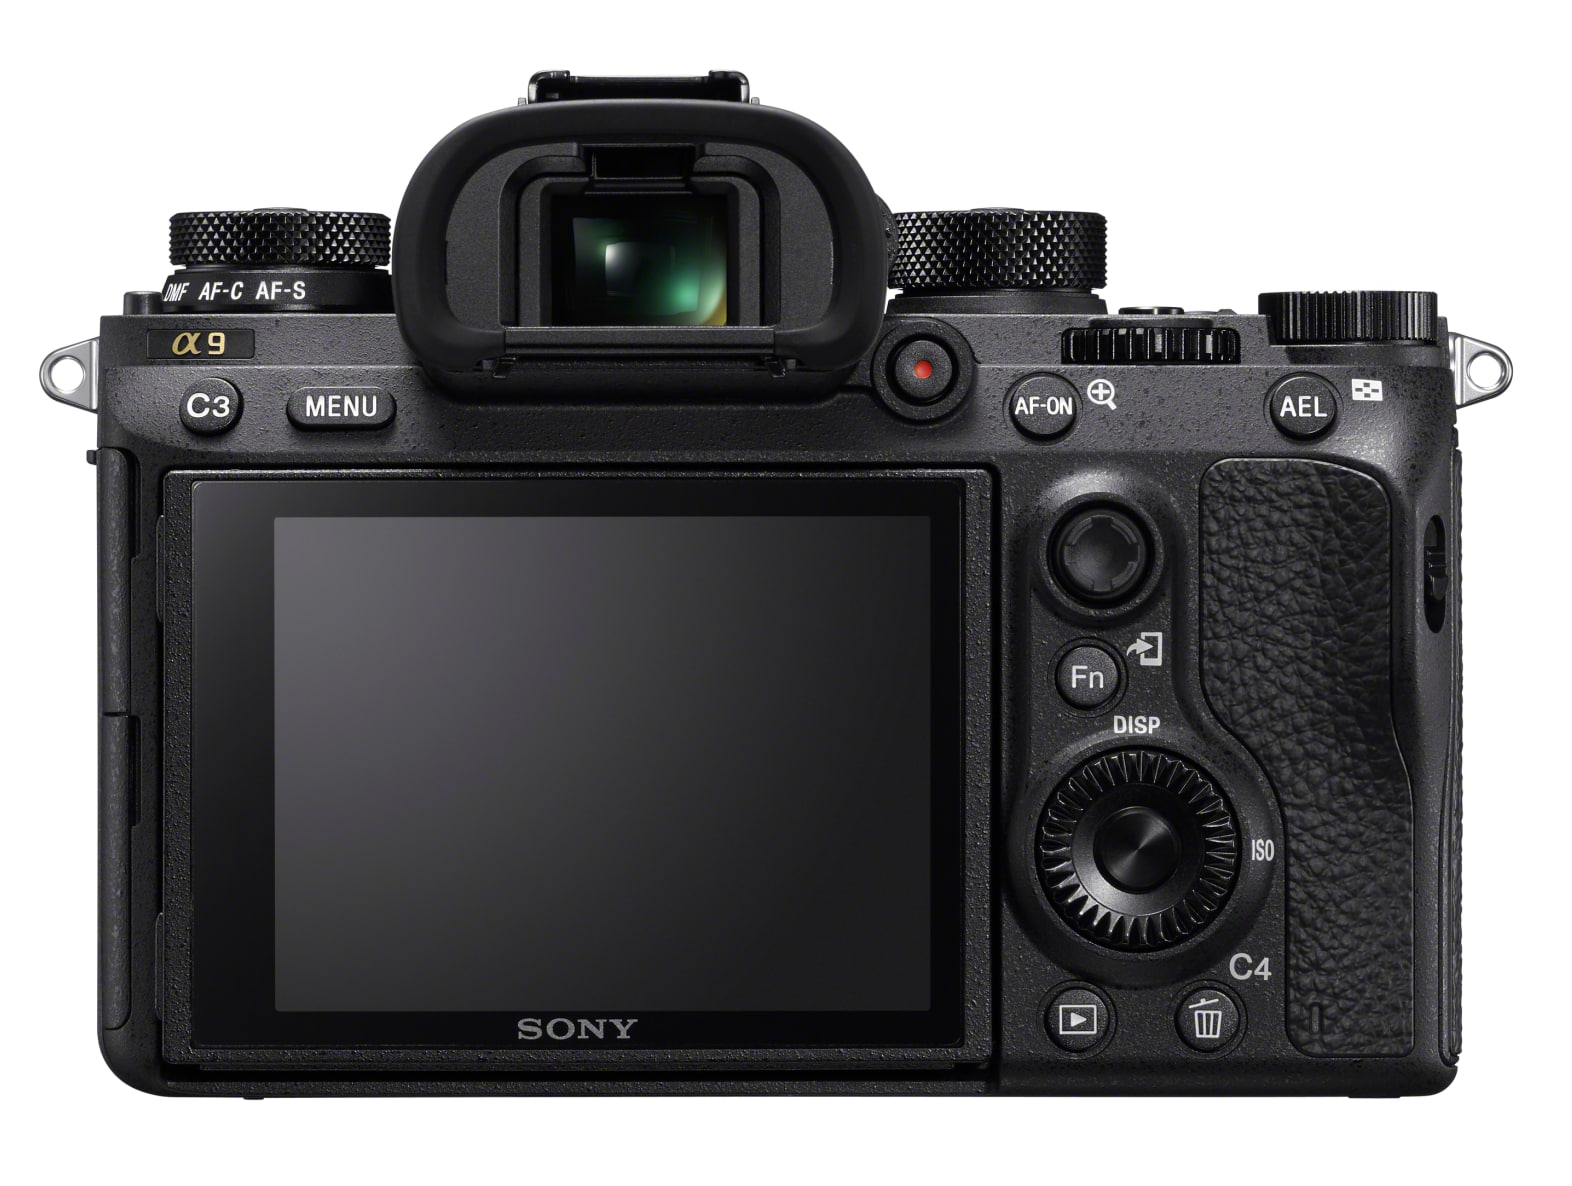 Sony A9 targets sports snappers with 20 fps shooting